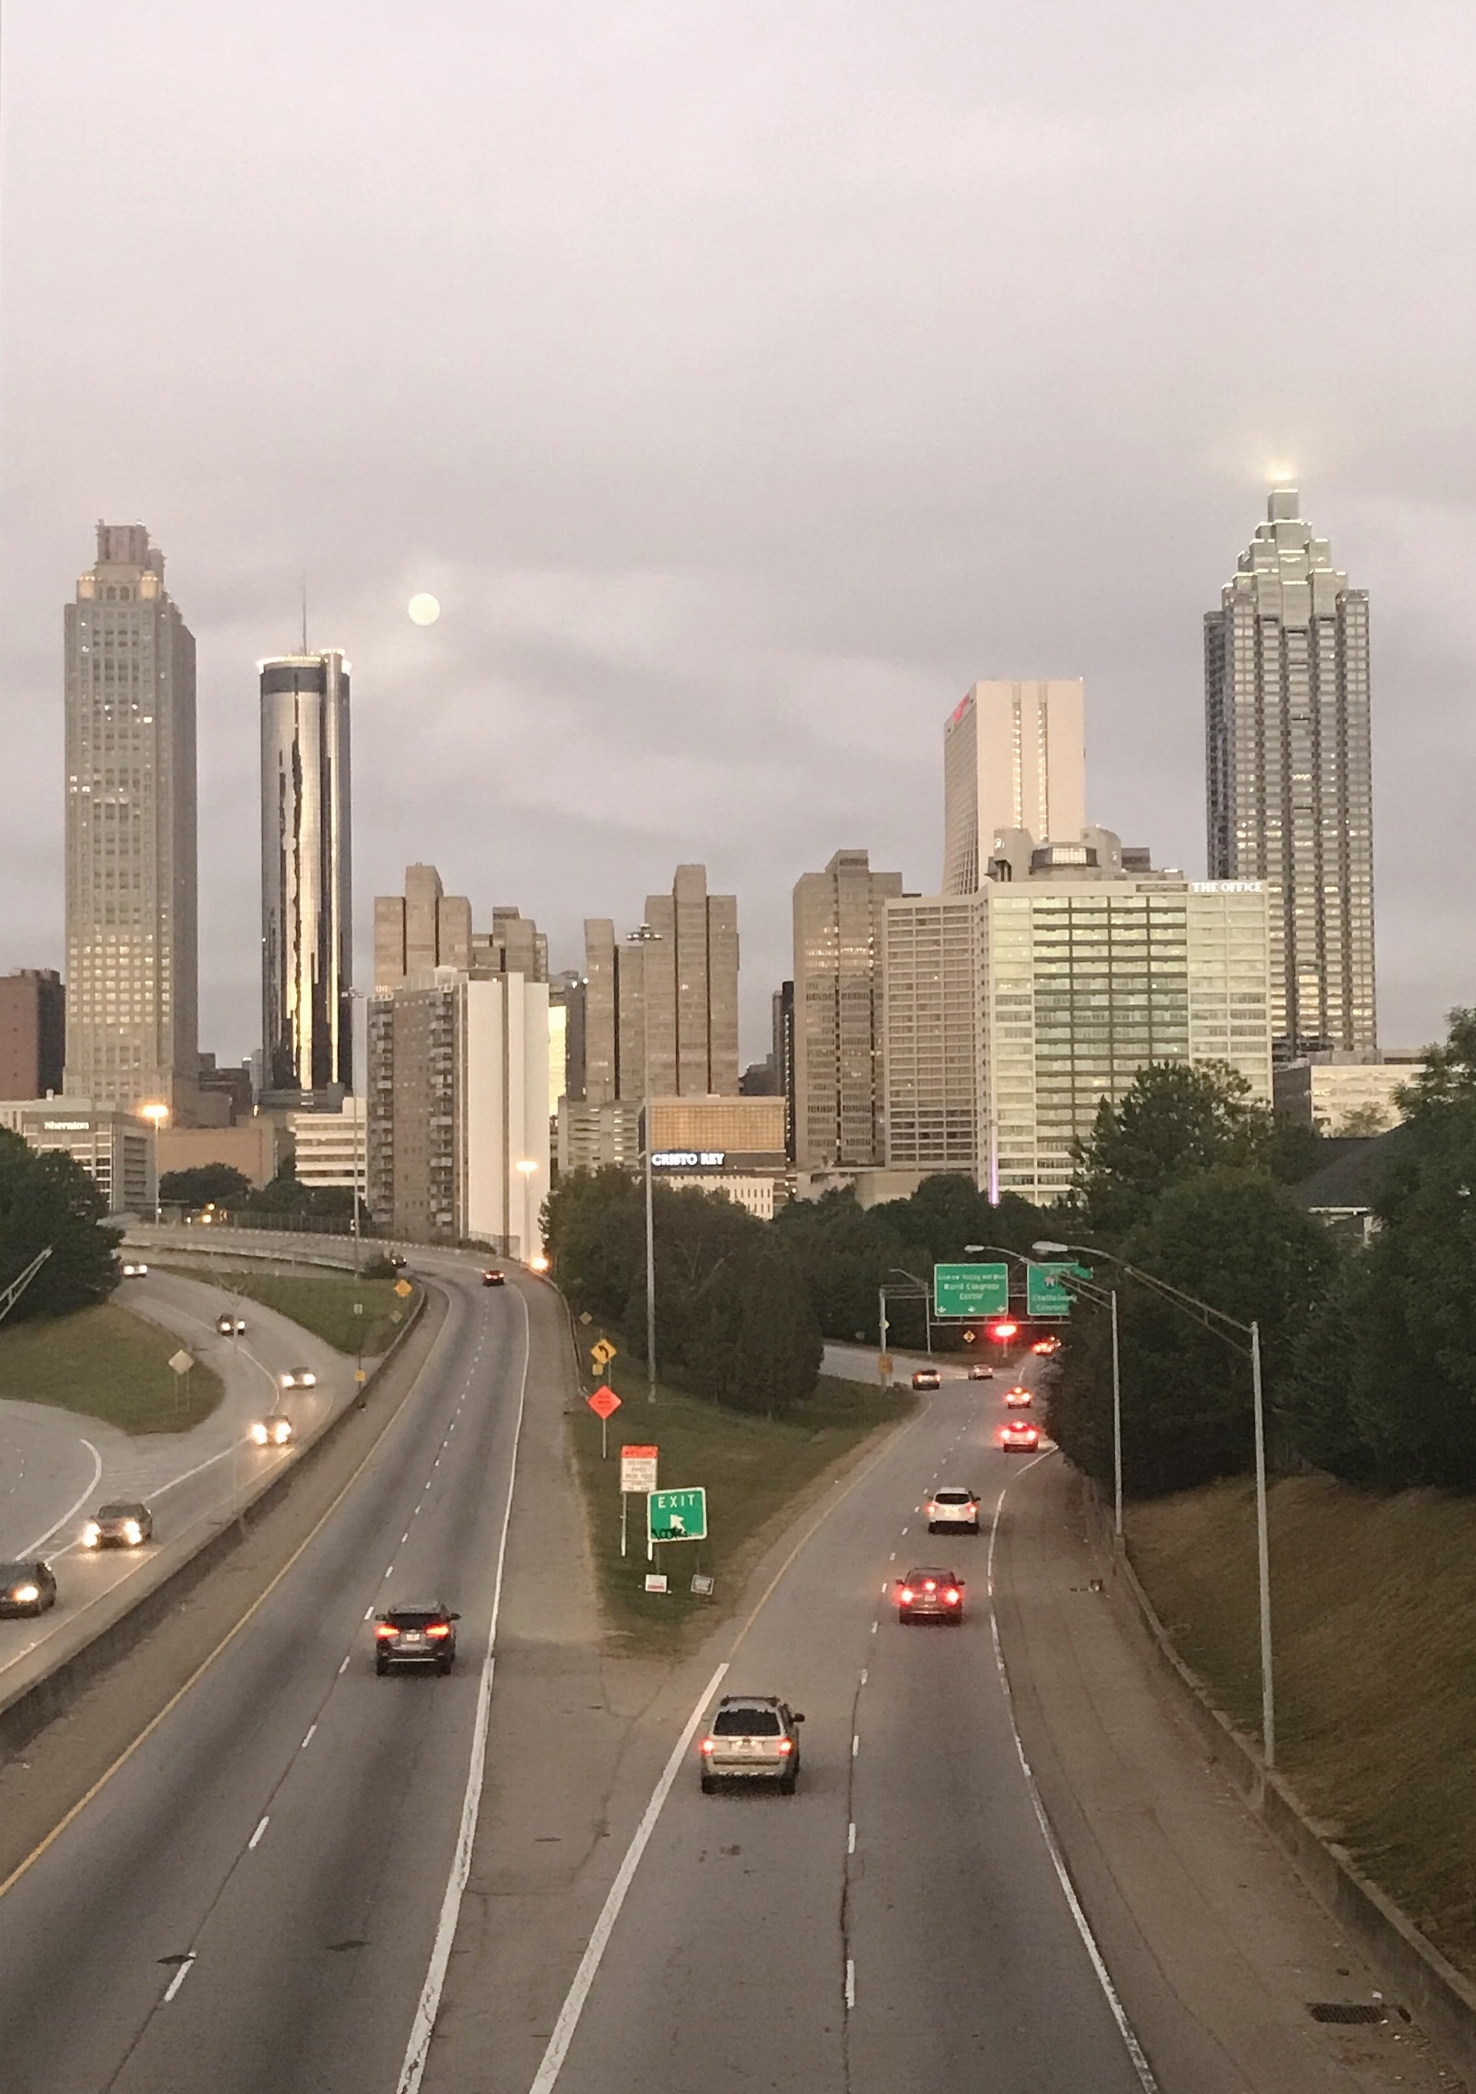 Sunrise in ATL with the recent harvest full moon